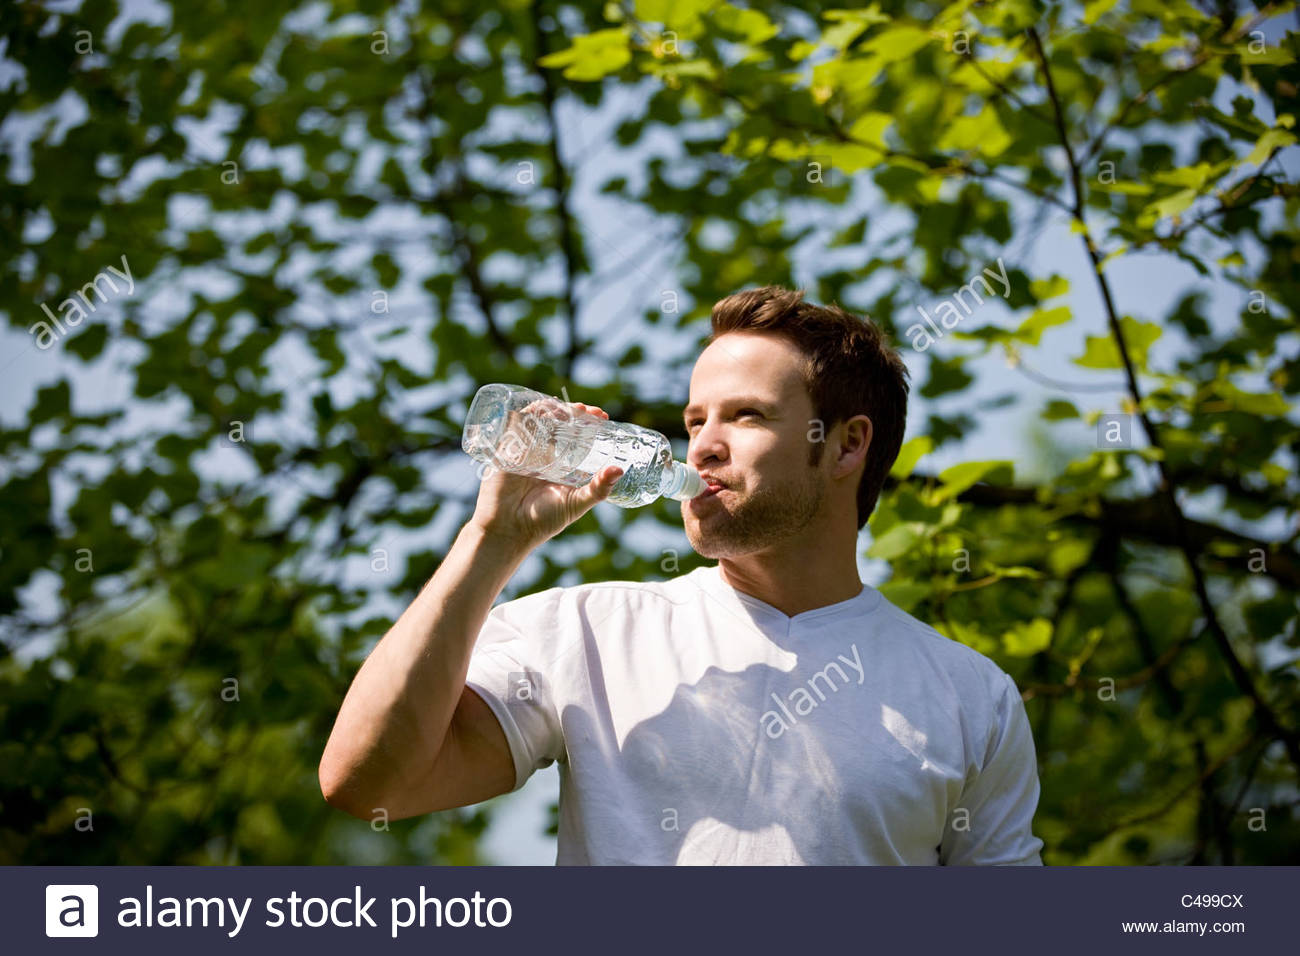 A young man drinking a bottle of water - Stock Image